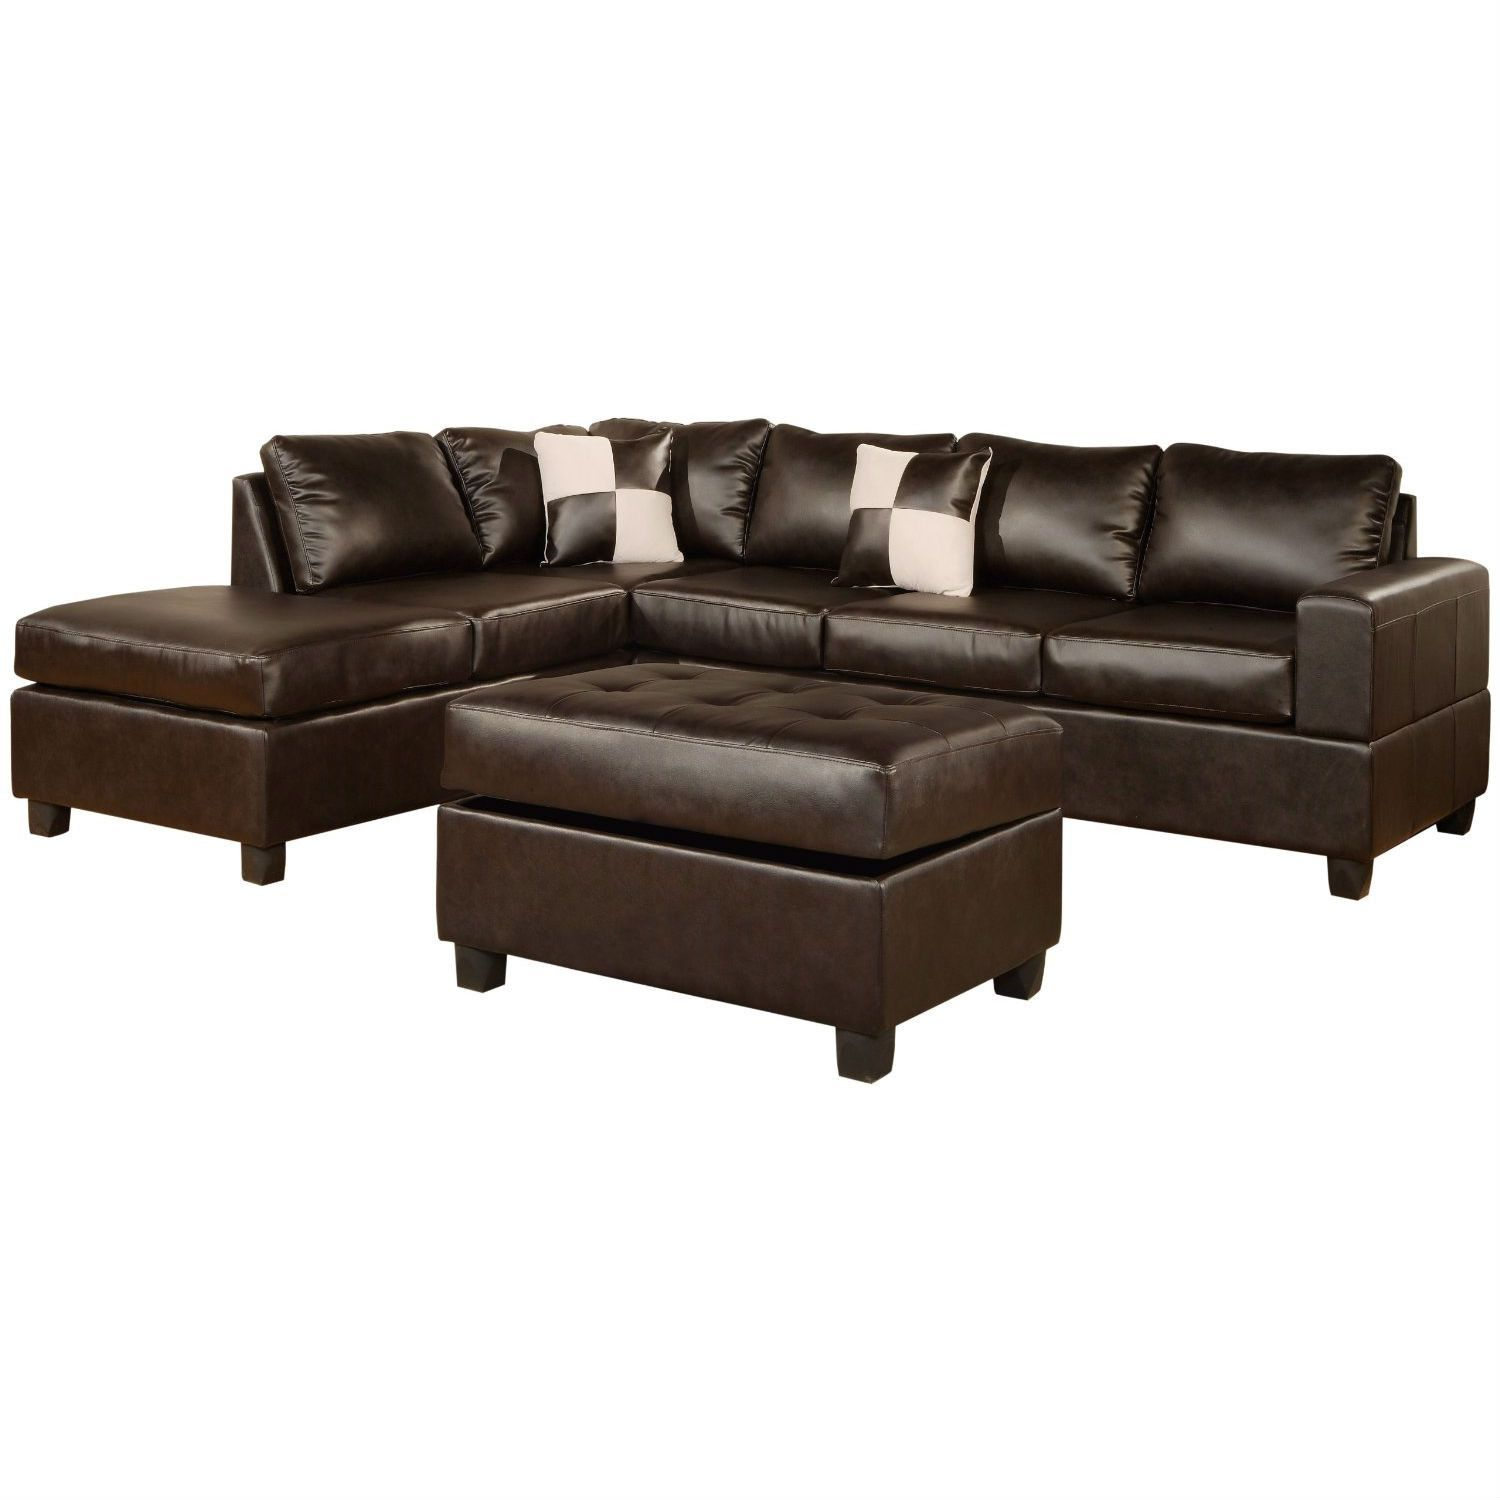 Bernhardt van gogh 2 piece leather sectional ebay - Traditional Sectional L Shaped Sofa Design Ideas For Living Room Furniture With Sweet Brown Leather Sofa Frame Covers And Soft Brown Square Shaped